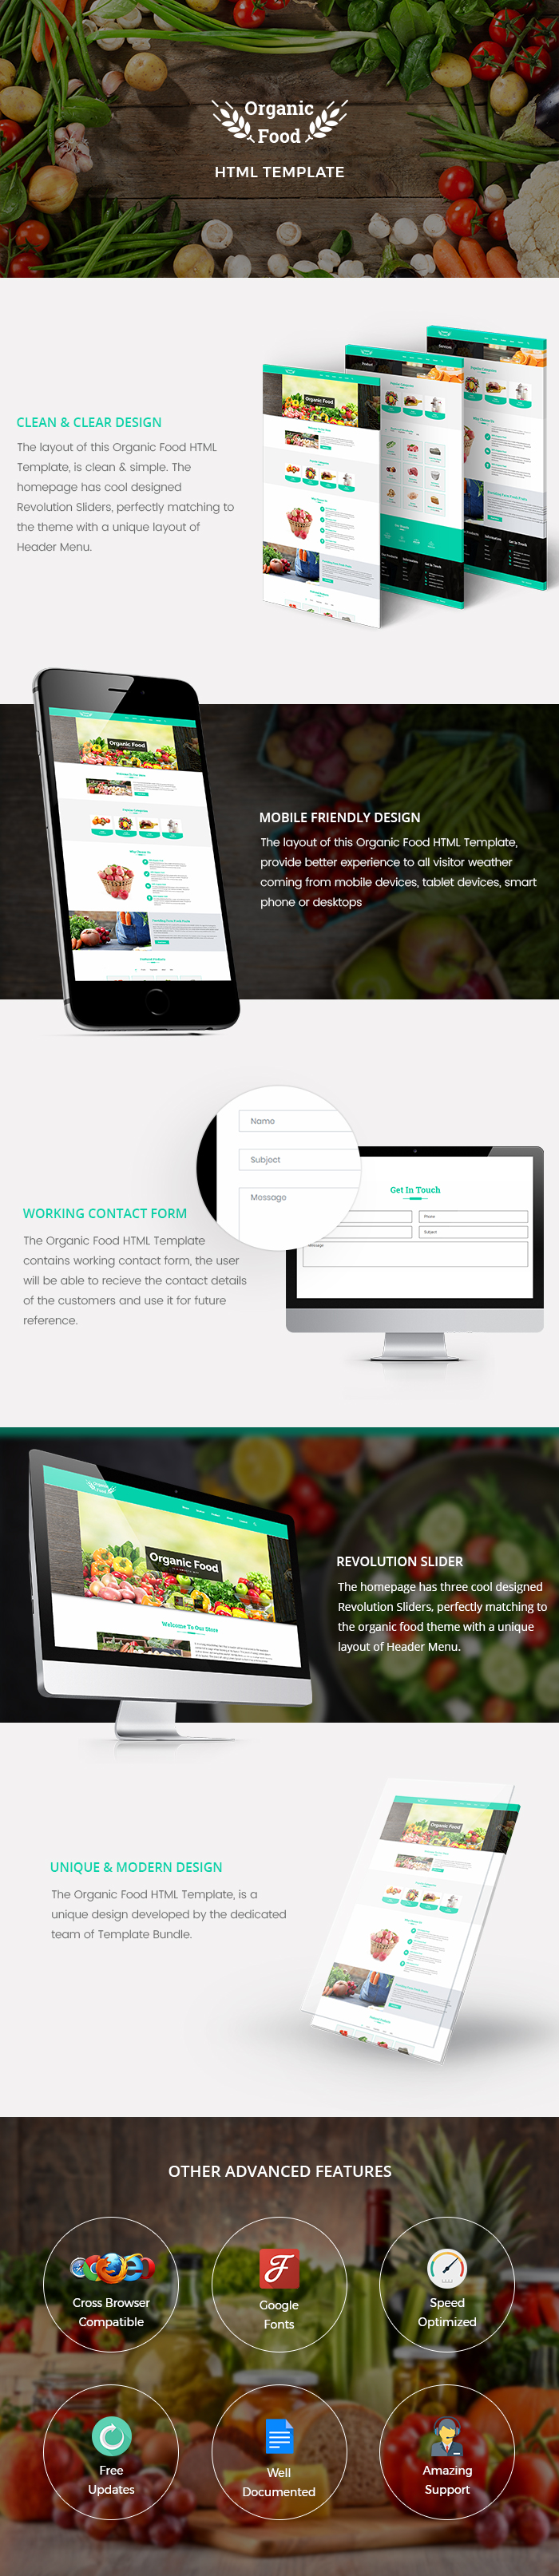 Perfect Html Header Template Motif - Professional Resume Examples ...